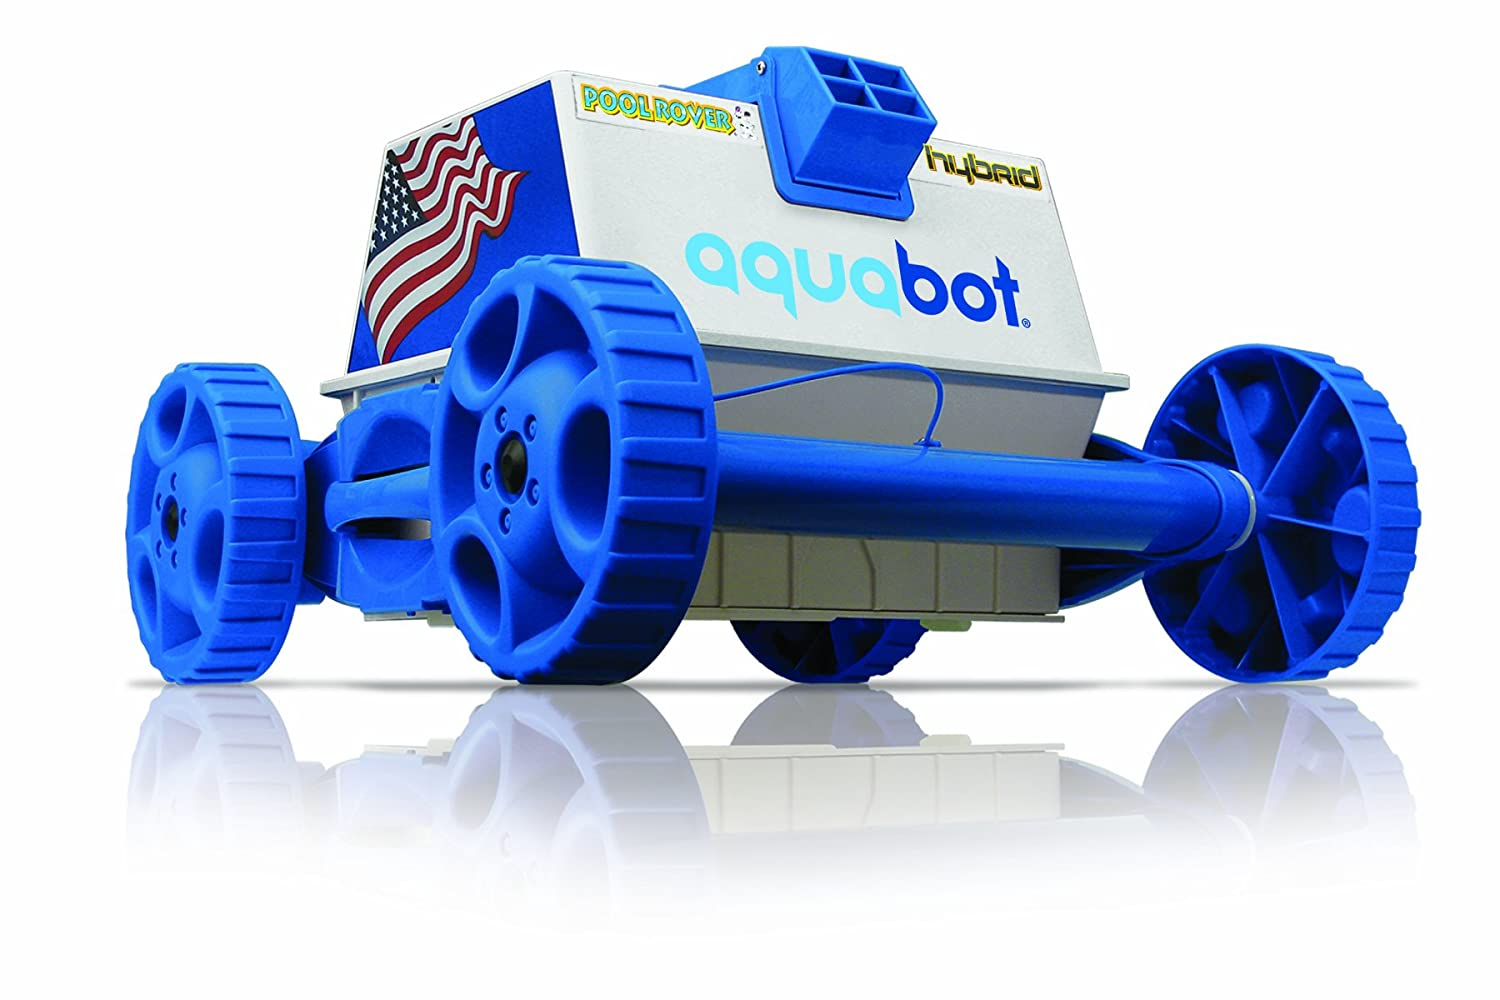 Aquabot Cheap Robotic Pool Cleaner